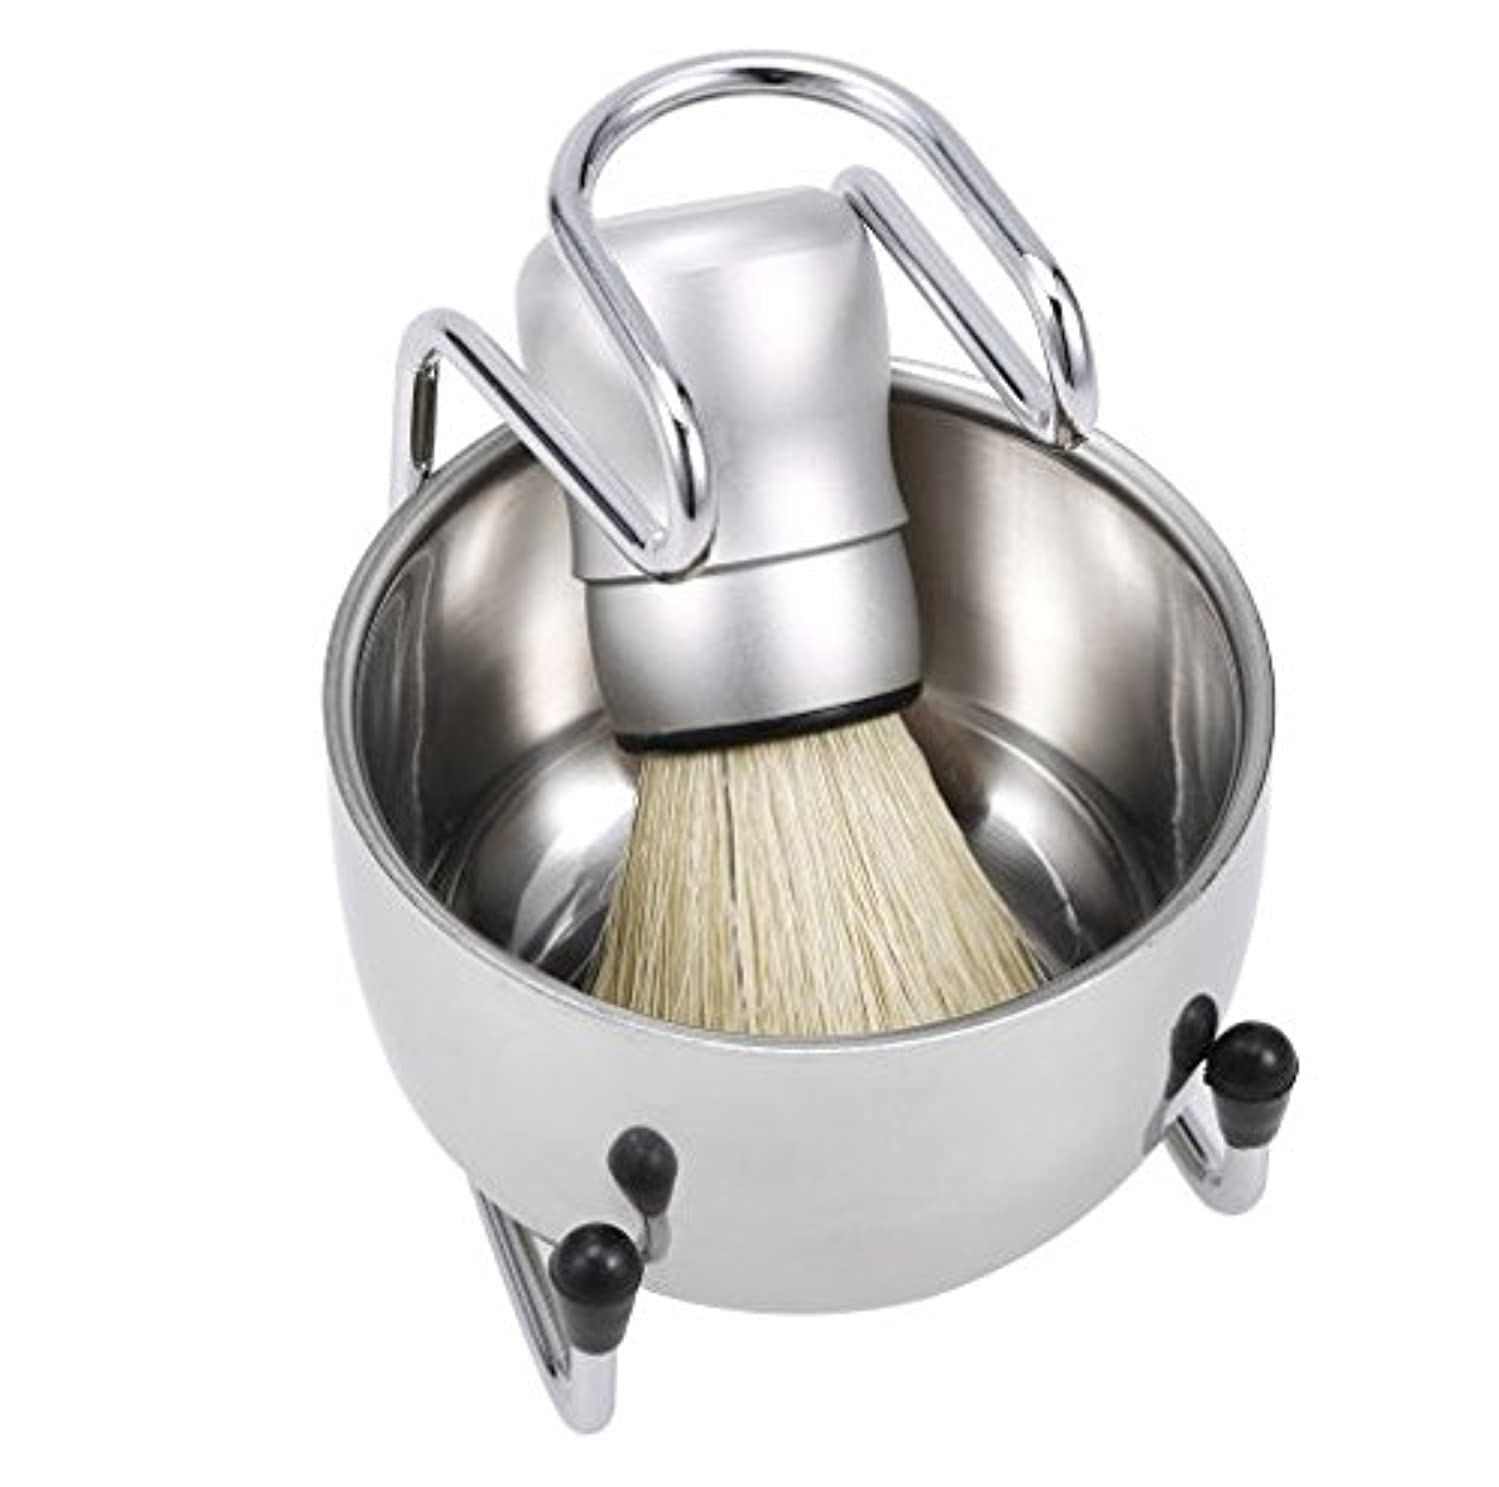 3 in 1 Men's Shaving Tools Set Well Polished Shaving Brush Soap Bowl Stand Holder Badger Hair Male Face Cleaning